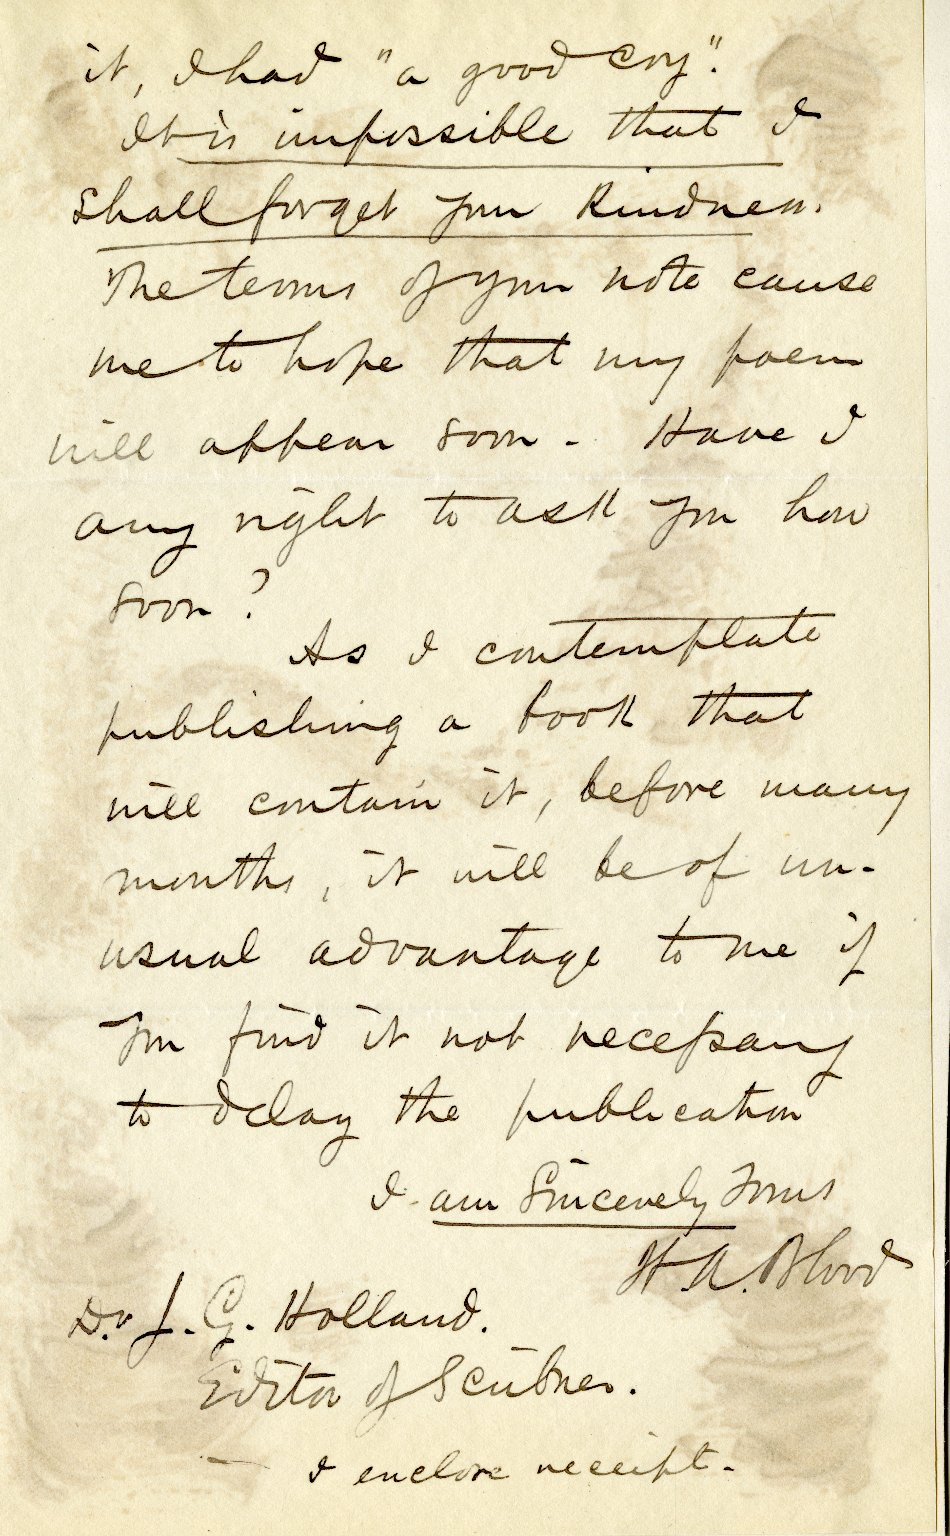 Blood, Henry Ames. ALS, 2 pages plus 4 page holograph poem, signed, March 15, 1875.